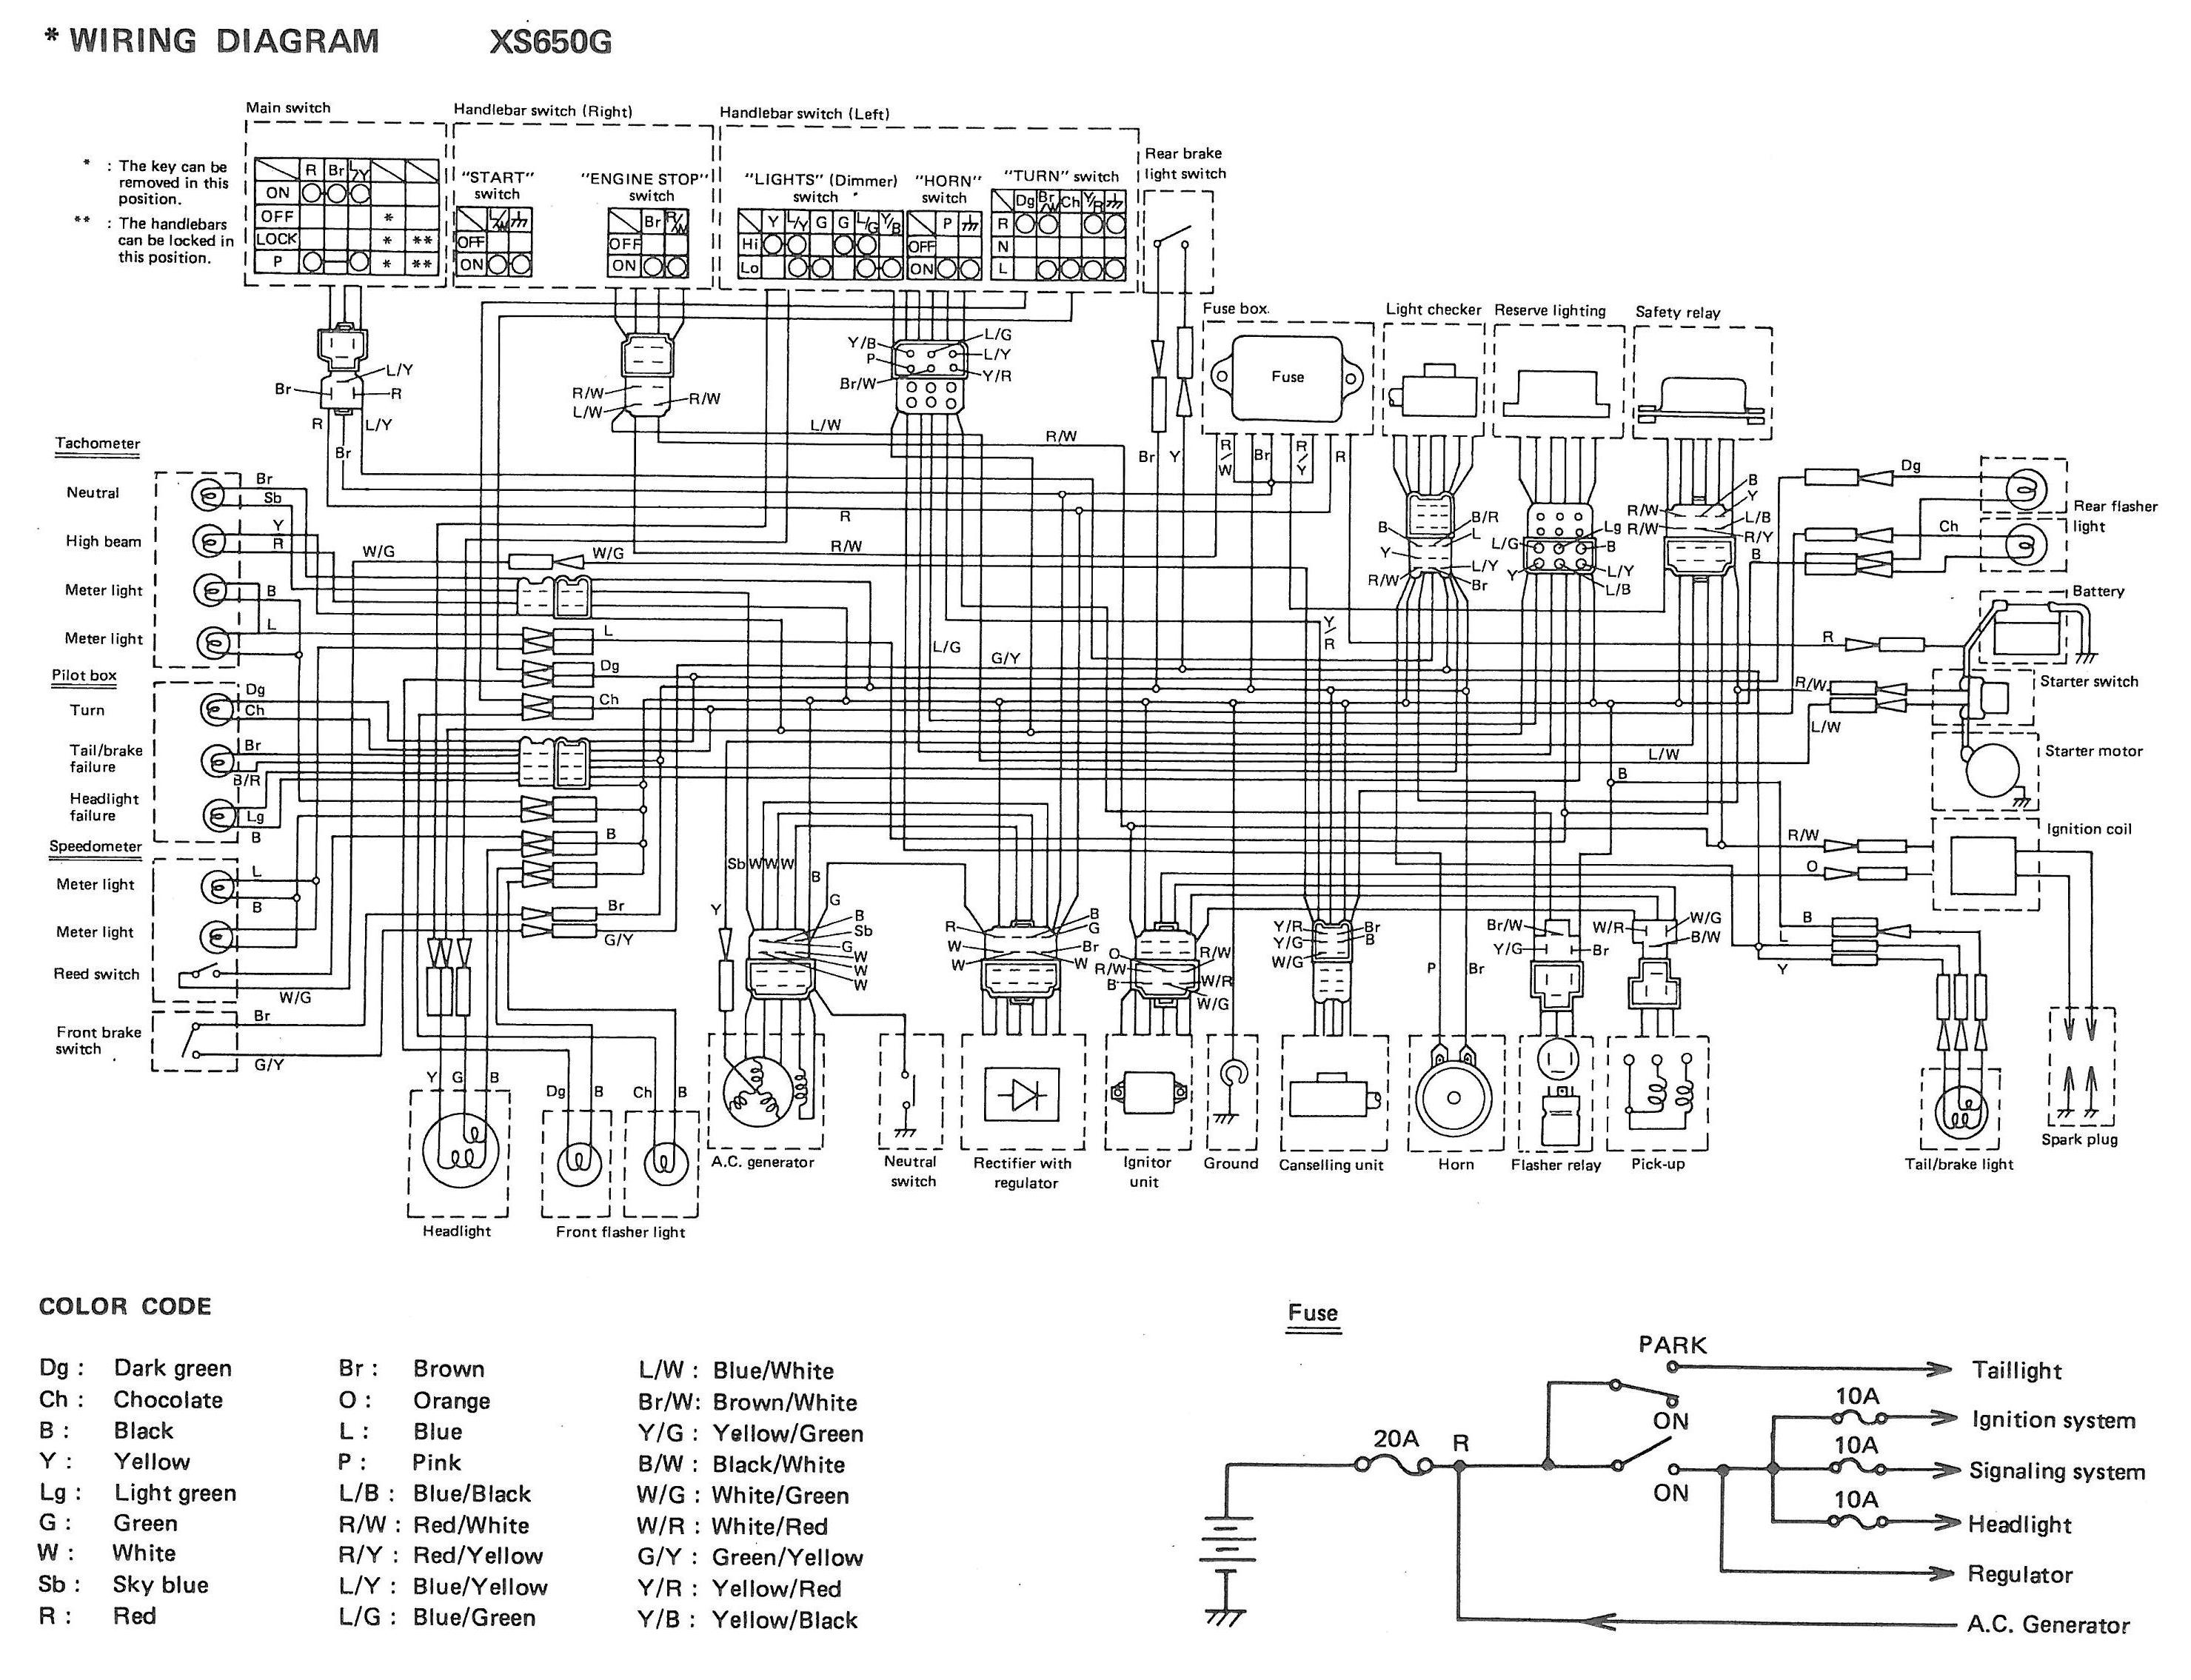 1983 Yamaha Maxim Wiring Diagrams Library 1981 Xj650 Diagram Sr500 Data Schema Rh Site De Joueurs Com 1982